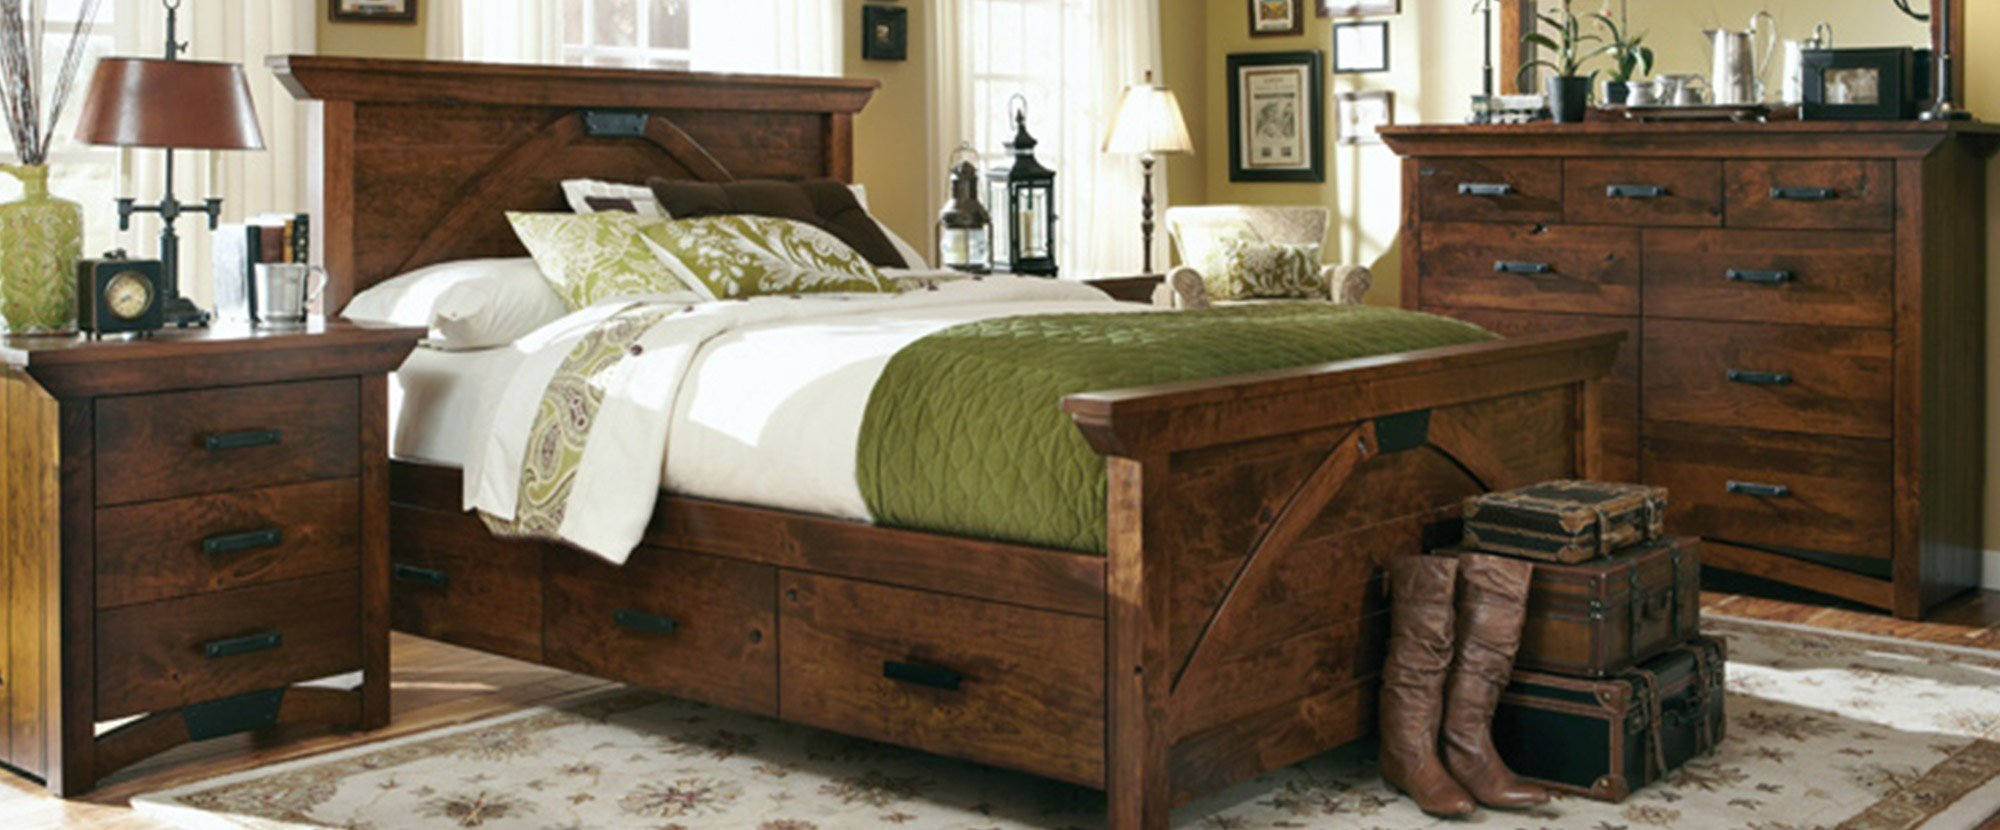 Best Bedroom Dining Living Room Furniture La Z Boy Mattresses West Lebanon Wolfeboro Nh With Pictures